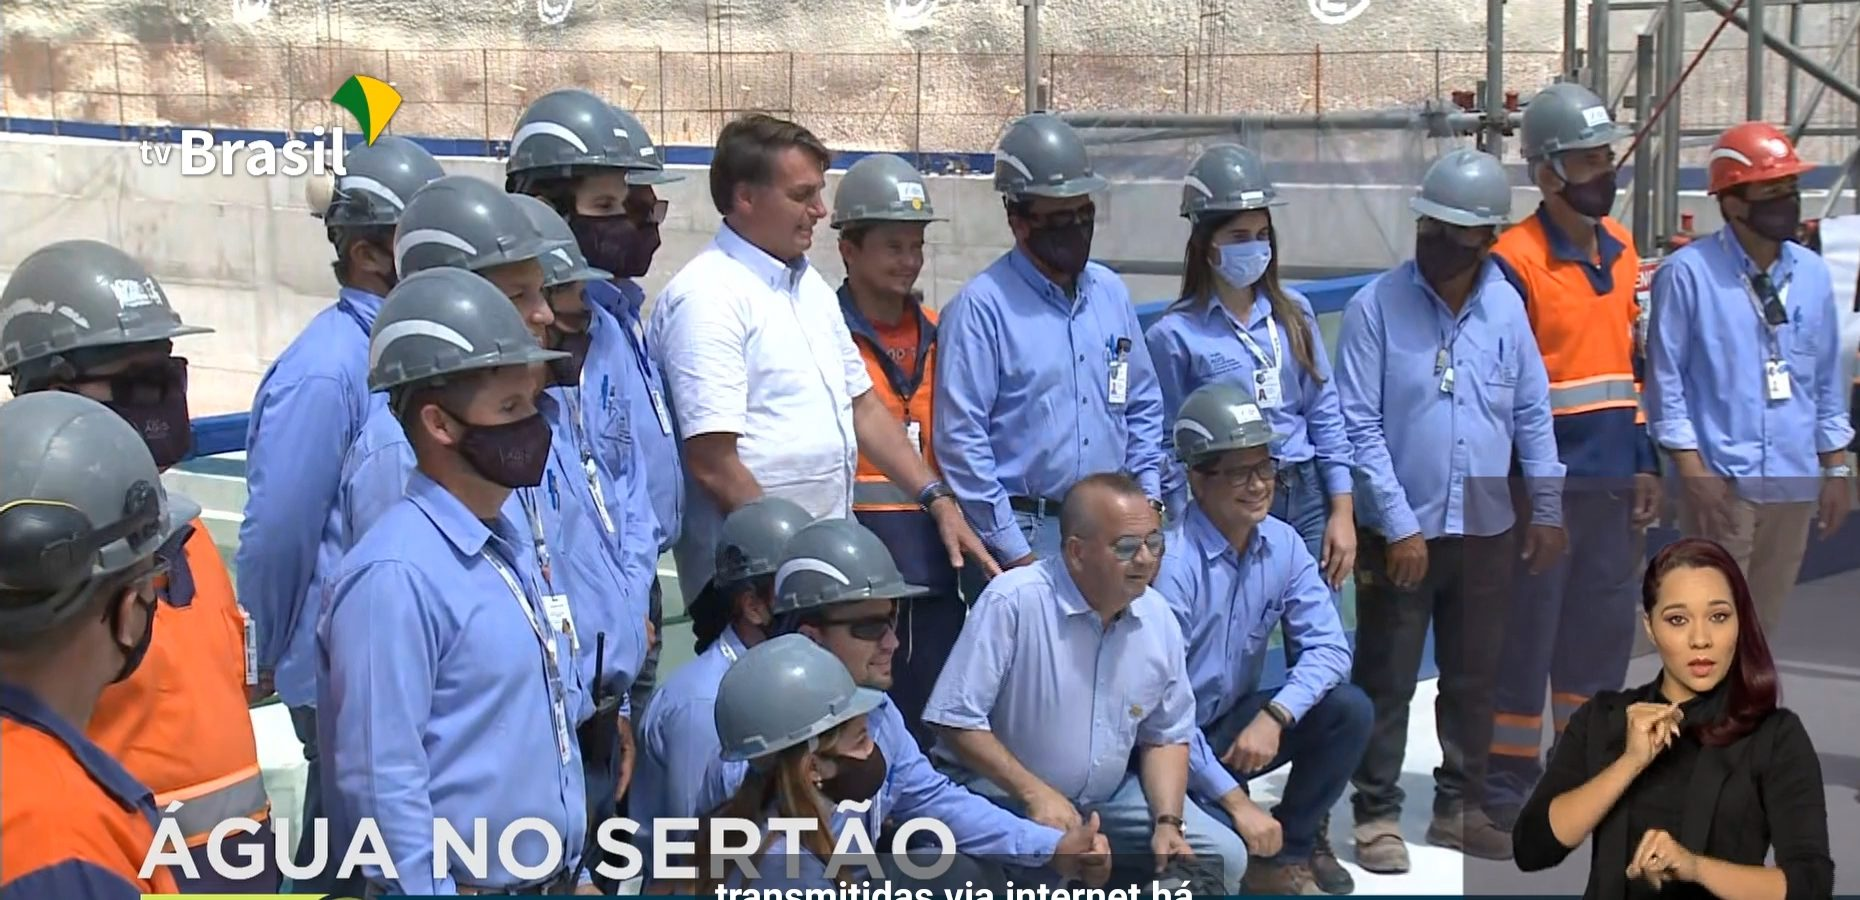 Screenshot_2020-10-01-13-04-56-456_com.facebook.katana-e1601568454864 Presidente Jair Messias Bolsonaro, visita obras do Ramal do Agreste em Sertânia